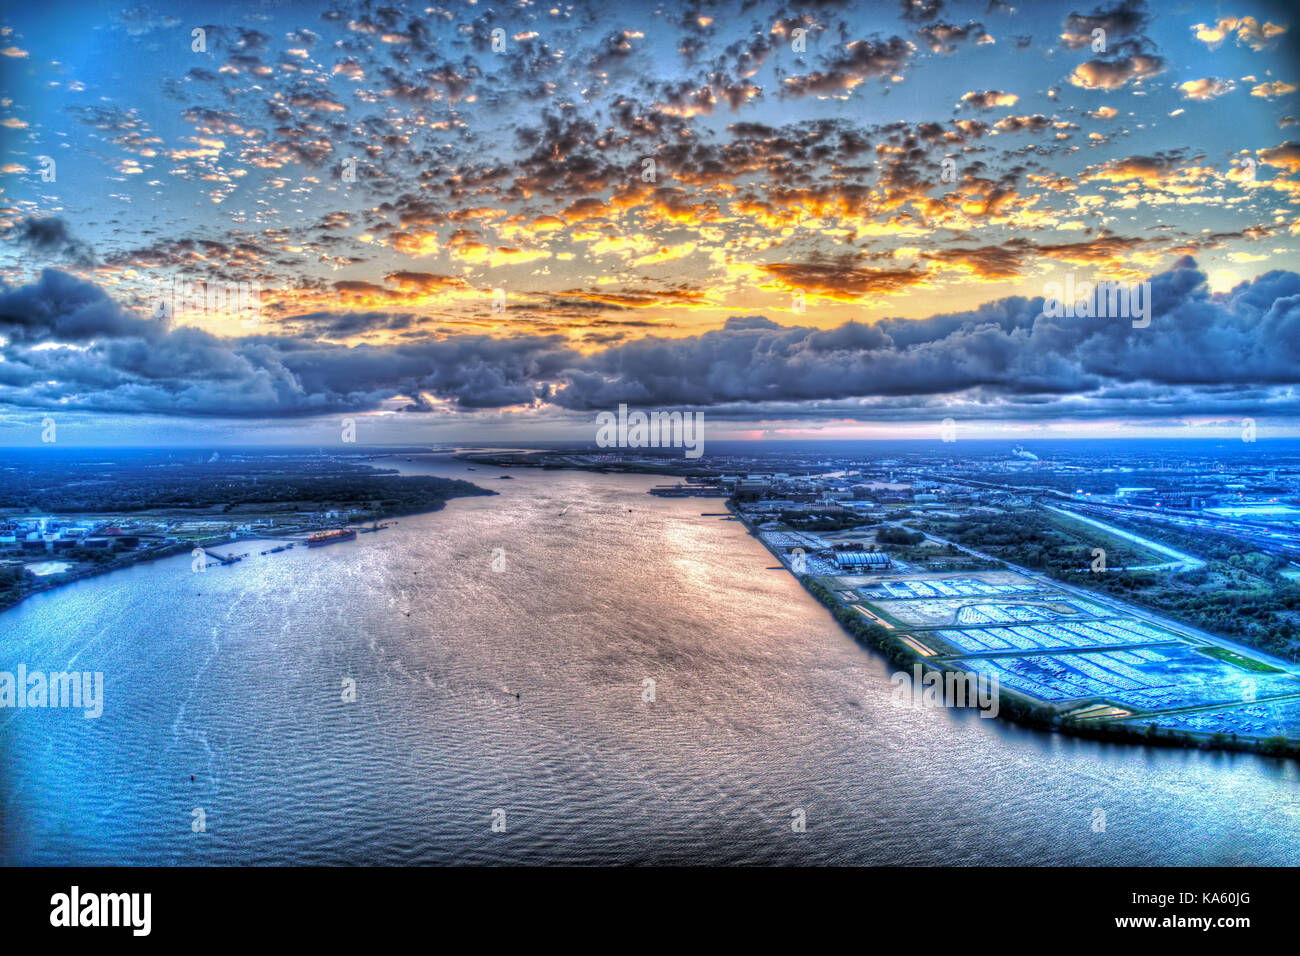 Aerial View of Heavy Cloud Cover at Sunset - Stock Image